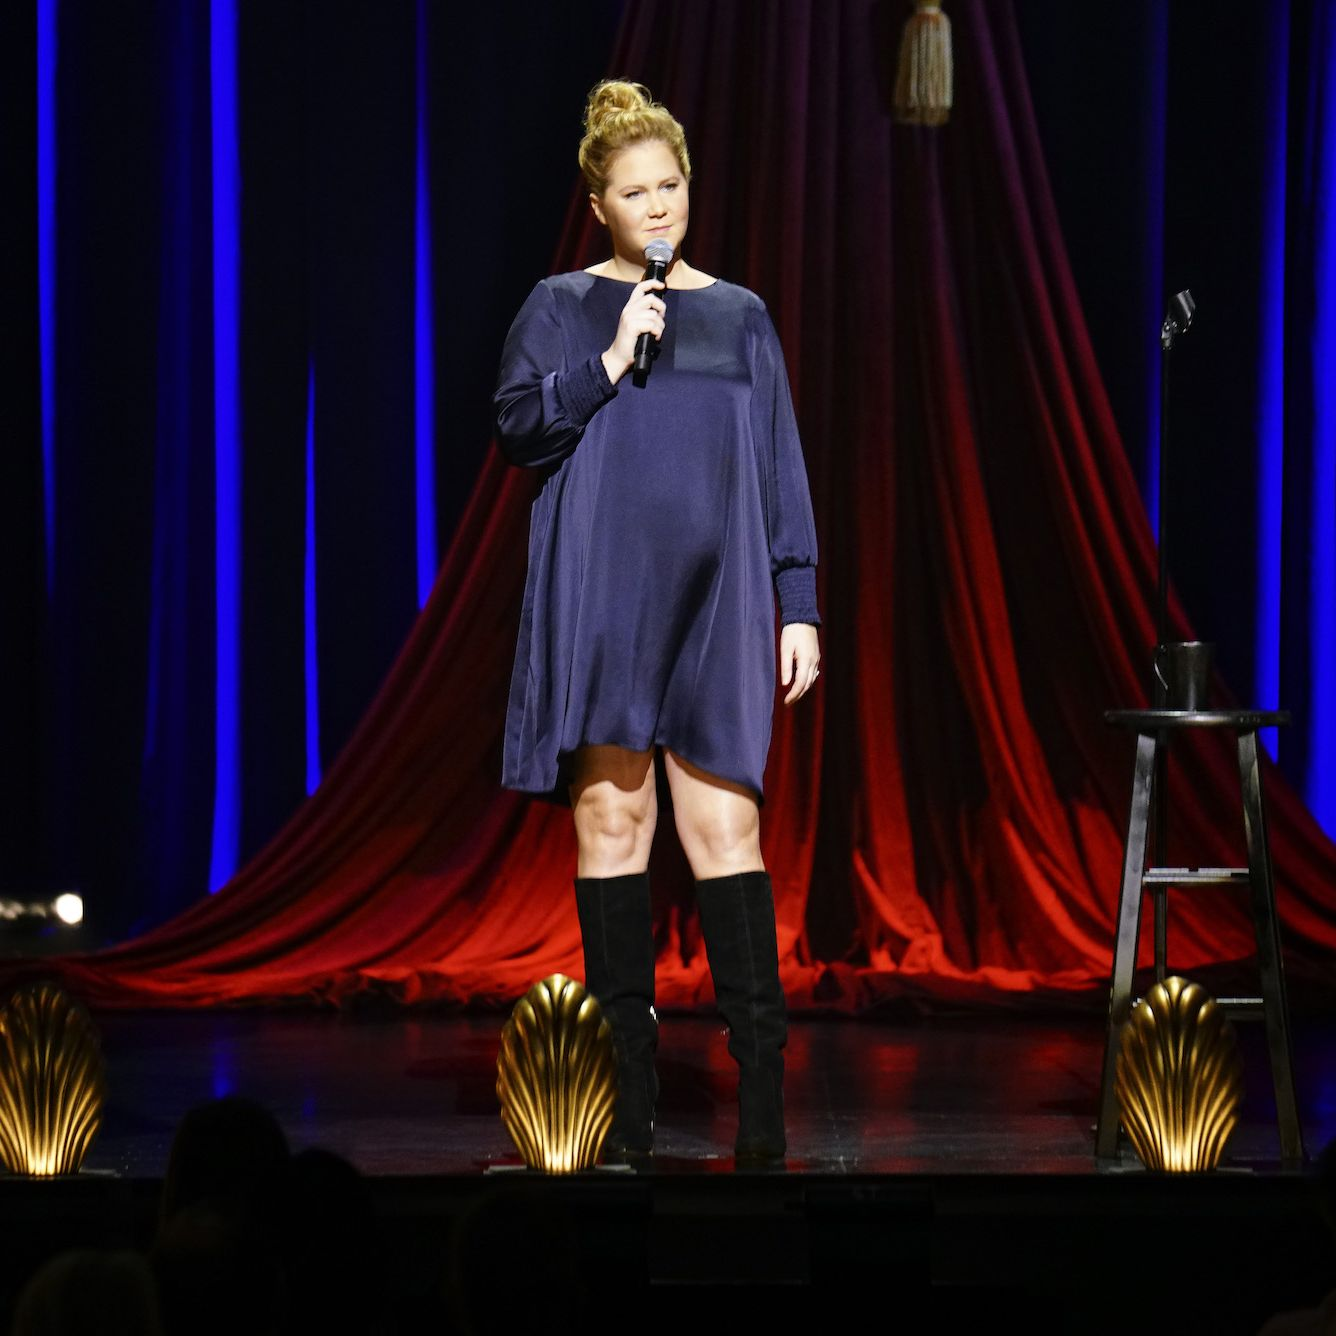 Amy Schumer Gets Extremely Real About Periods in Her New Netflix Special